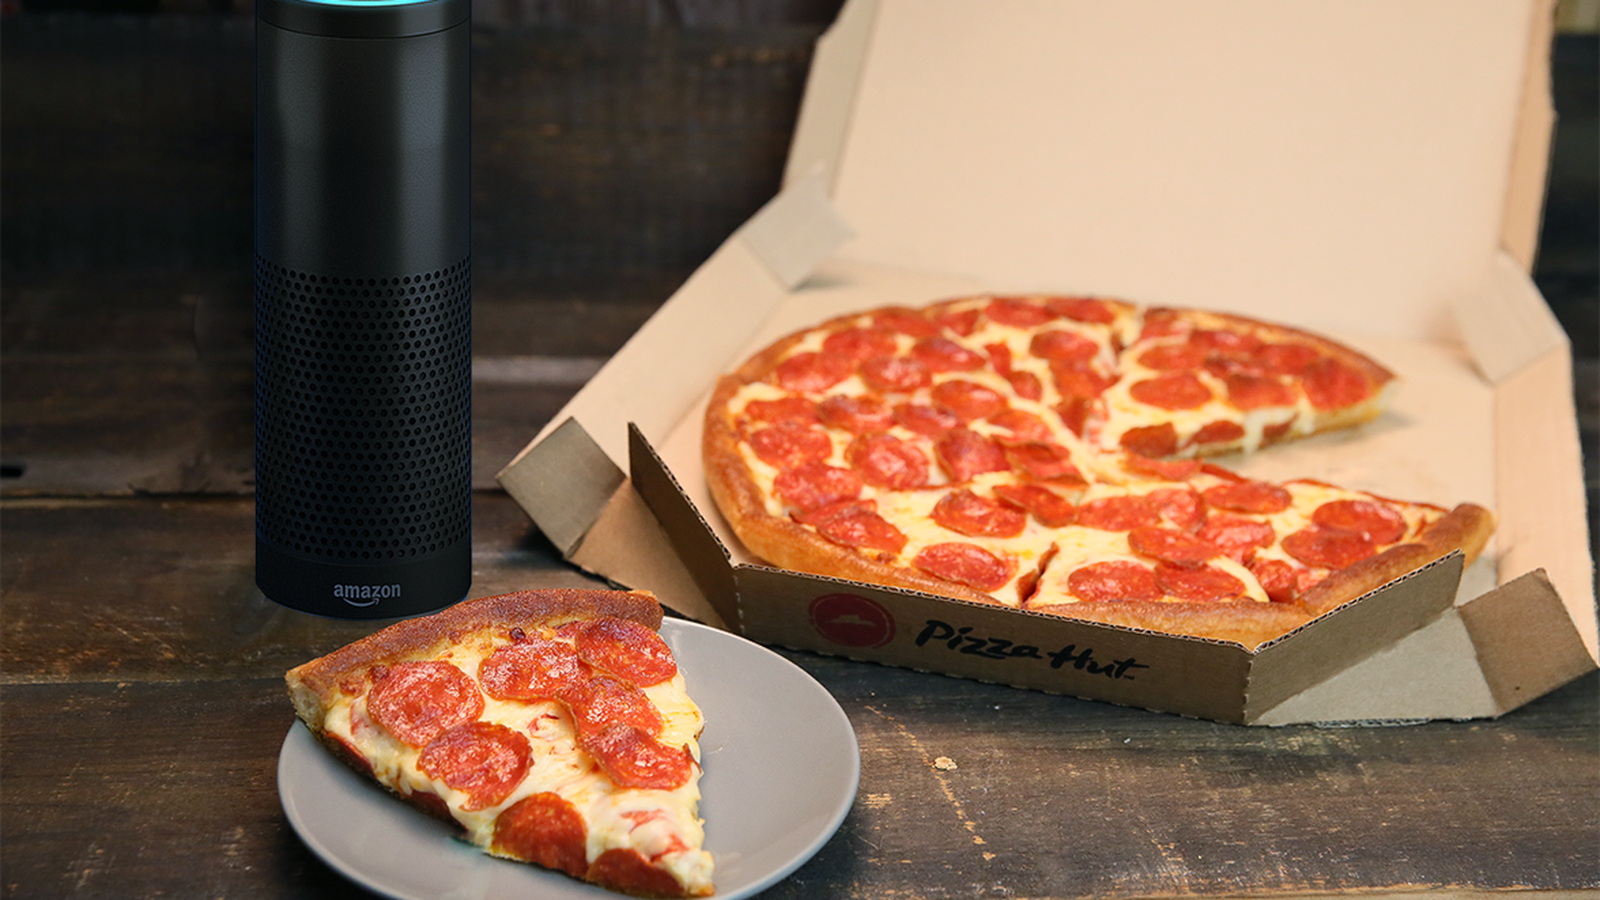 Pizza Hut Partners With Amazon To Let People Order Food